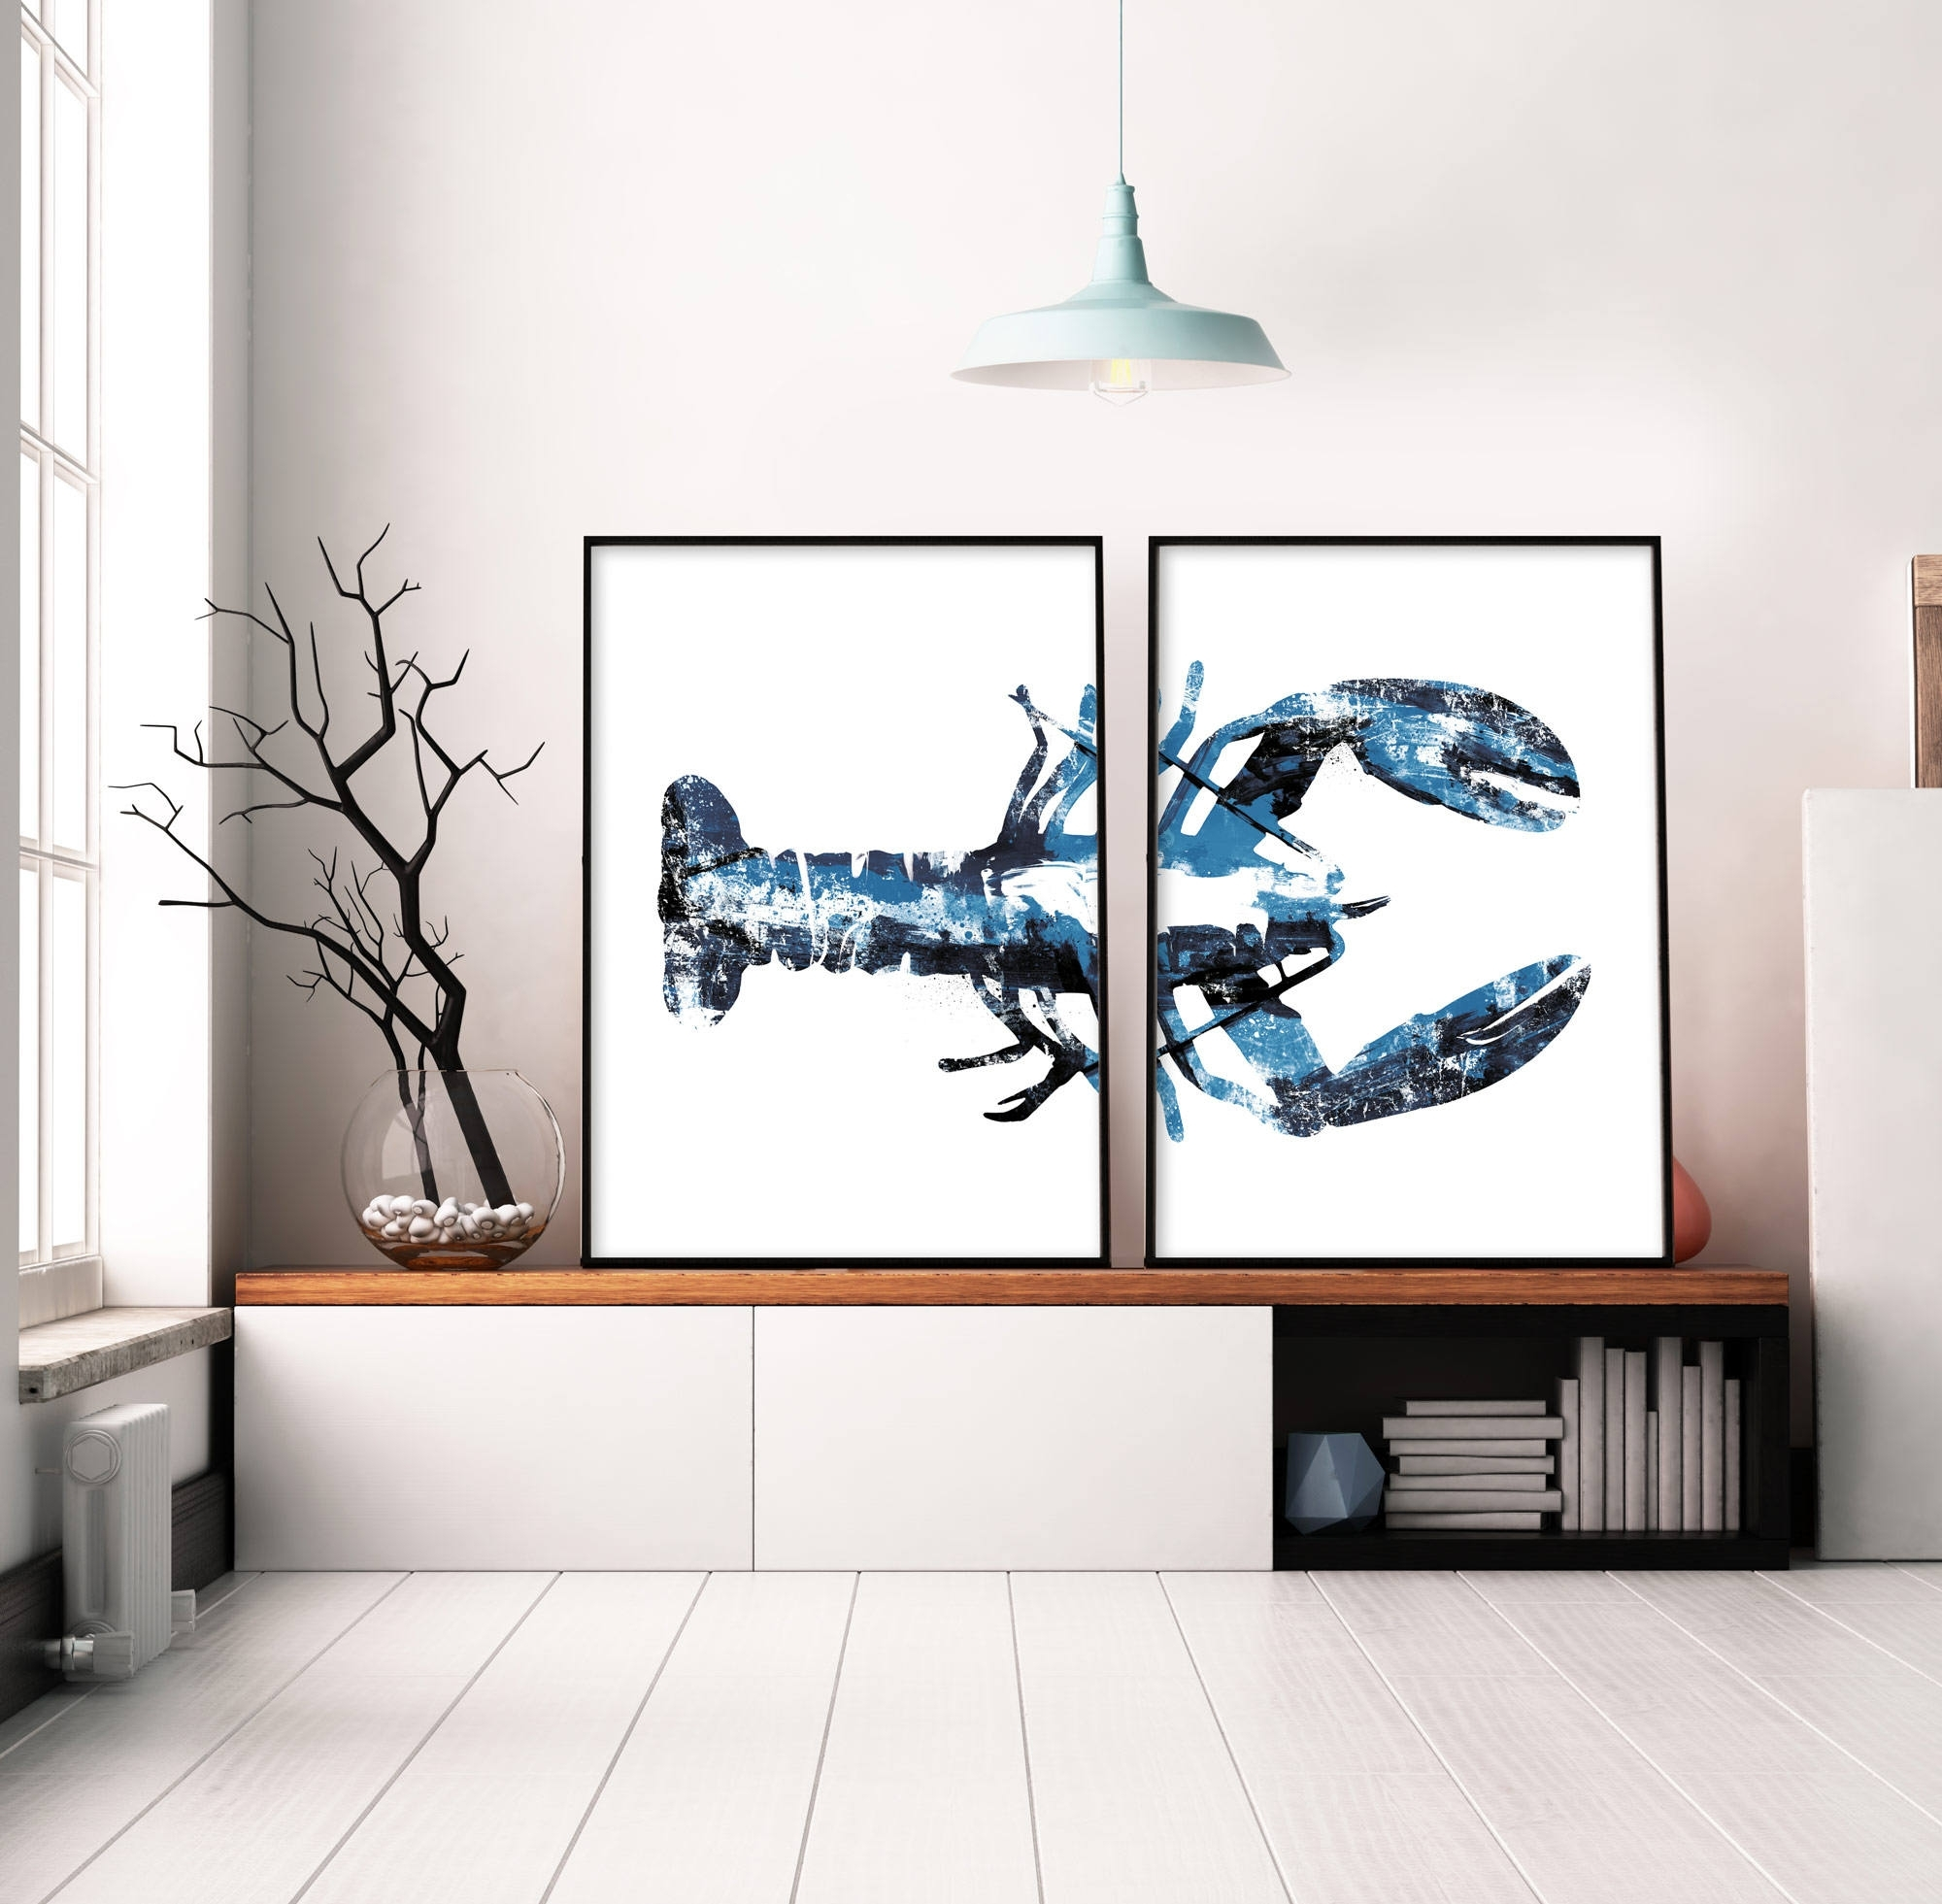 Set Of 2 Prints, Navy Blue Art, Lobster Print, Large Wall Art With Regard To 2017 Printable Abstract Wall Art (View 17 of 20)